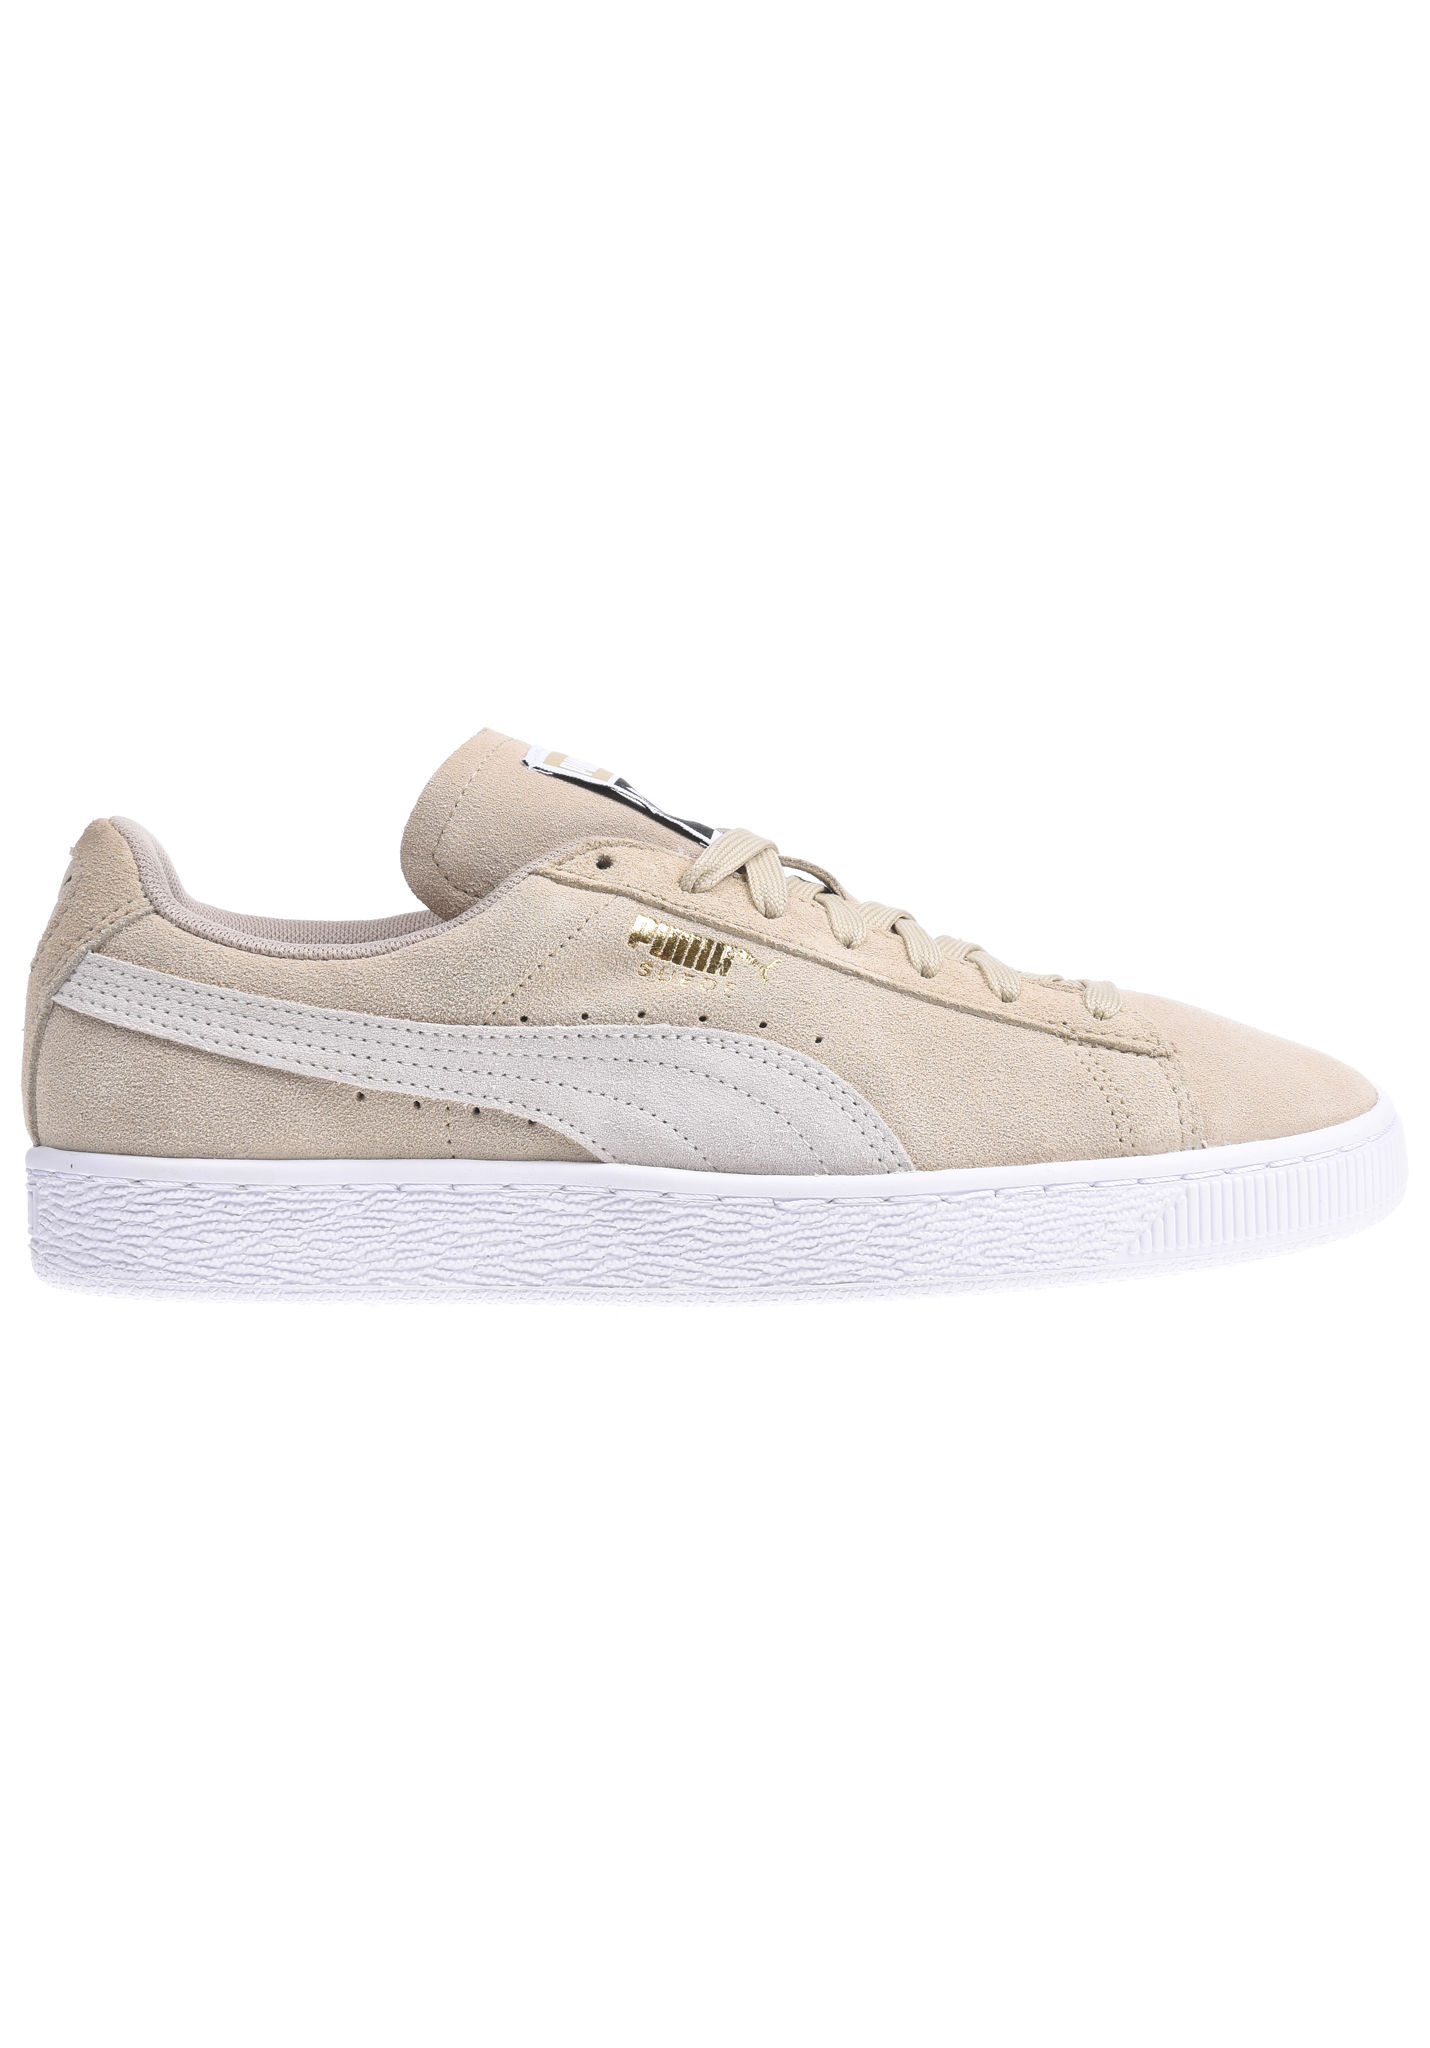 6974f972a20 Puma Suede Classic - Sneakers voor Dames - Beige - Planet Sports